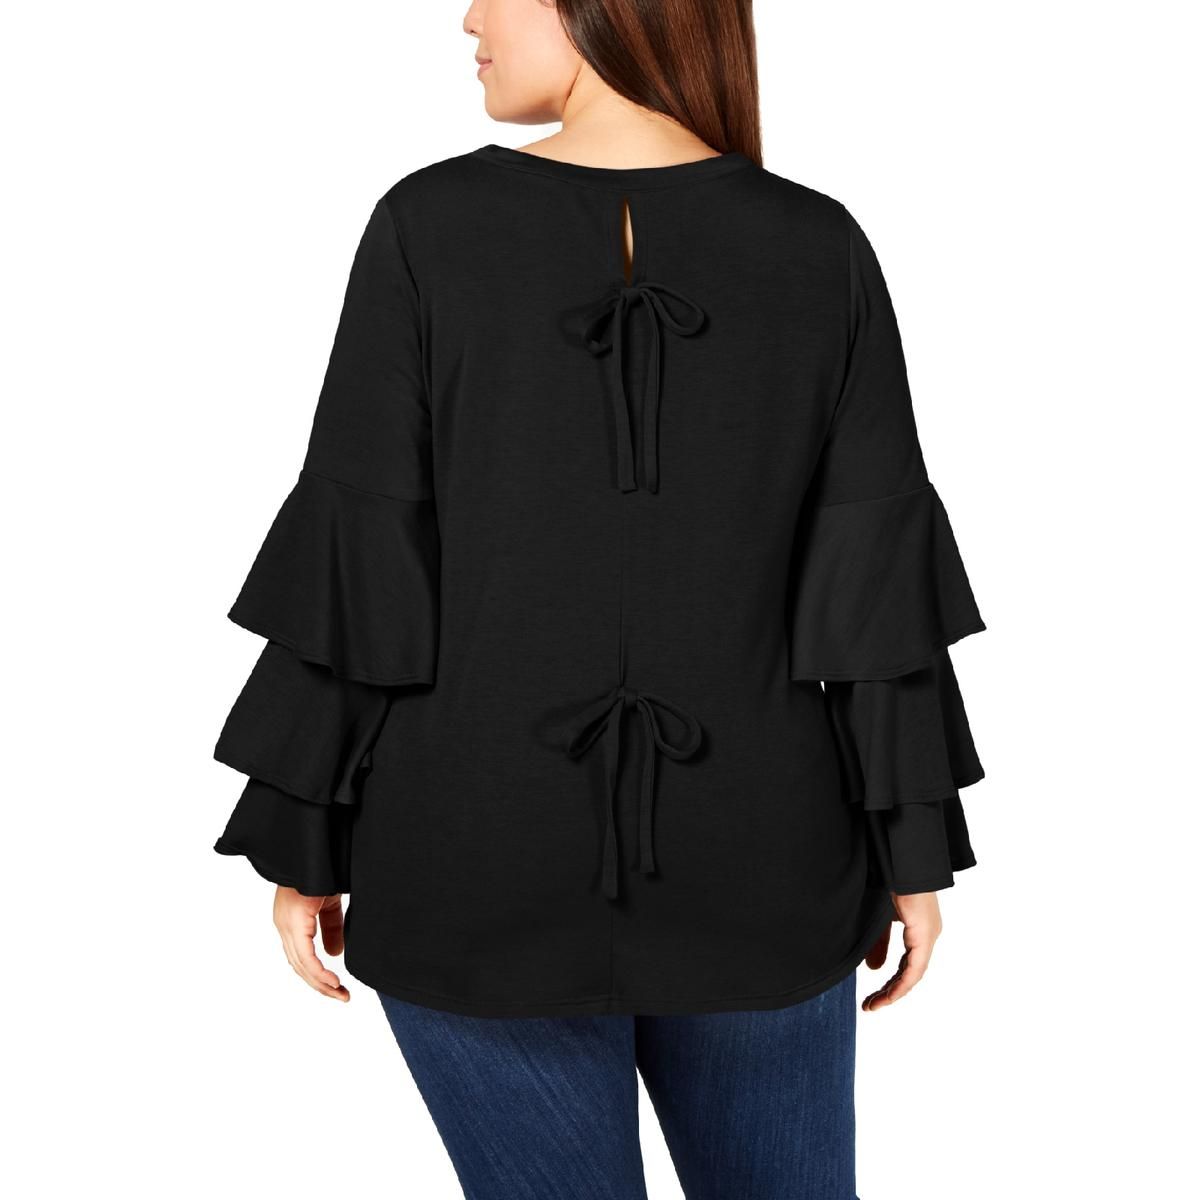 NY Collection Womens Black Ruffled Slit Pullover Top Shirt Plus 1X BHFO 1046